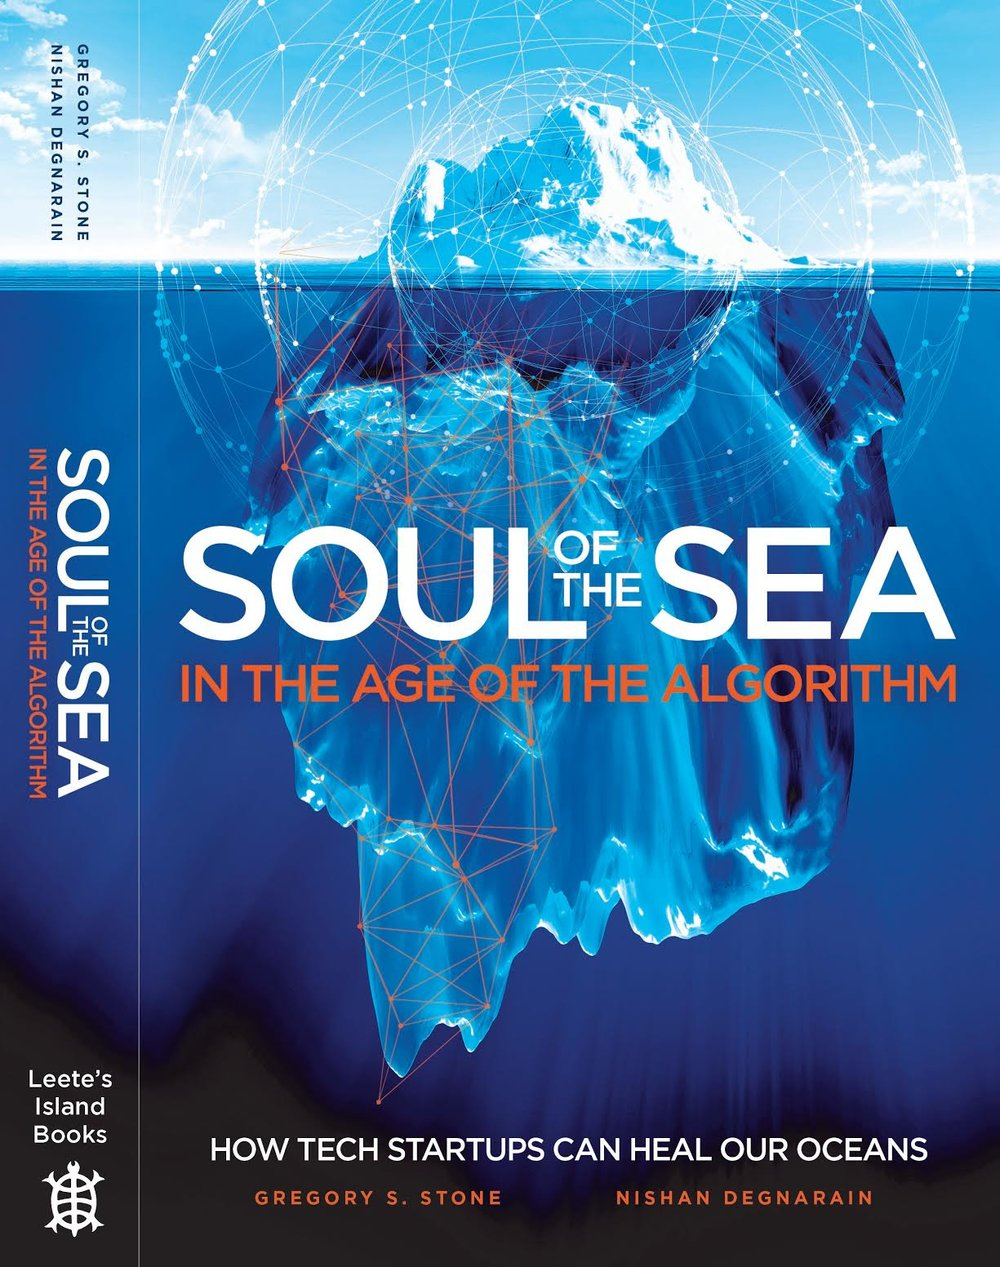 Check out Greg's new book,SOUL OF THE SEA IN THE AGE OF THE ALGORITHM. -